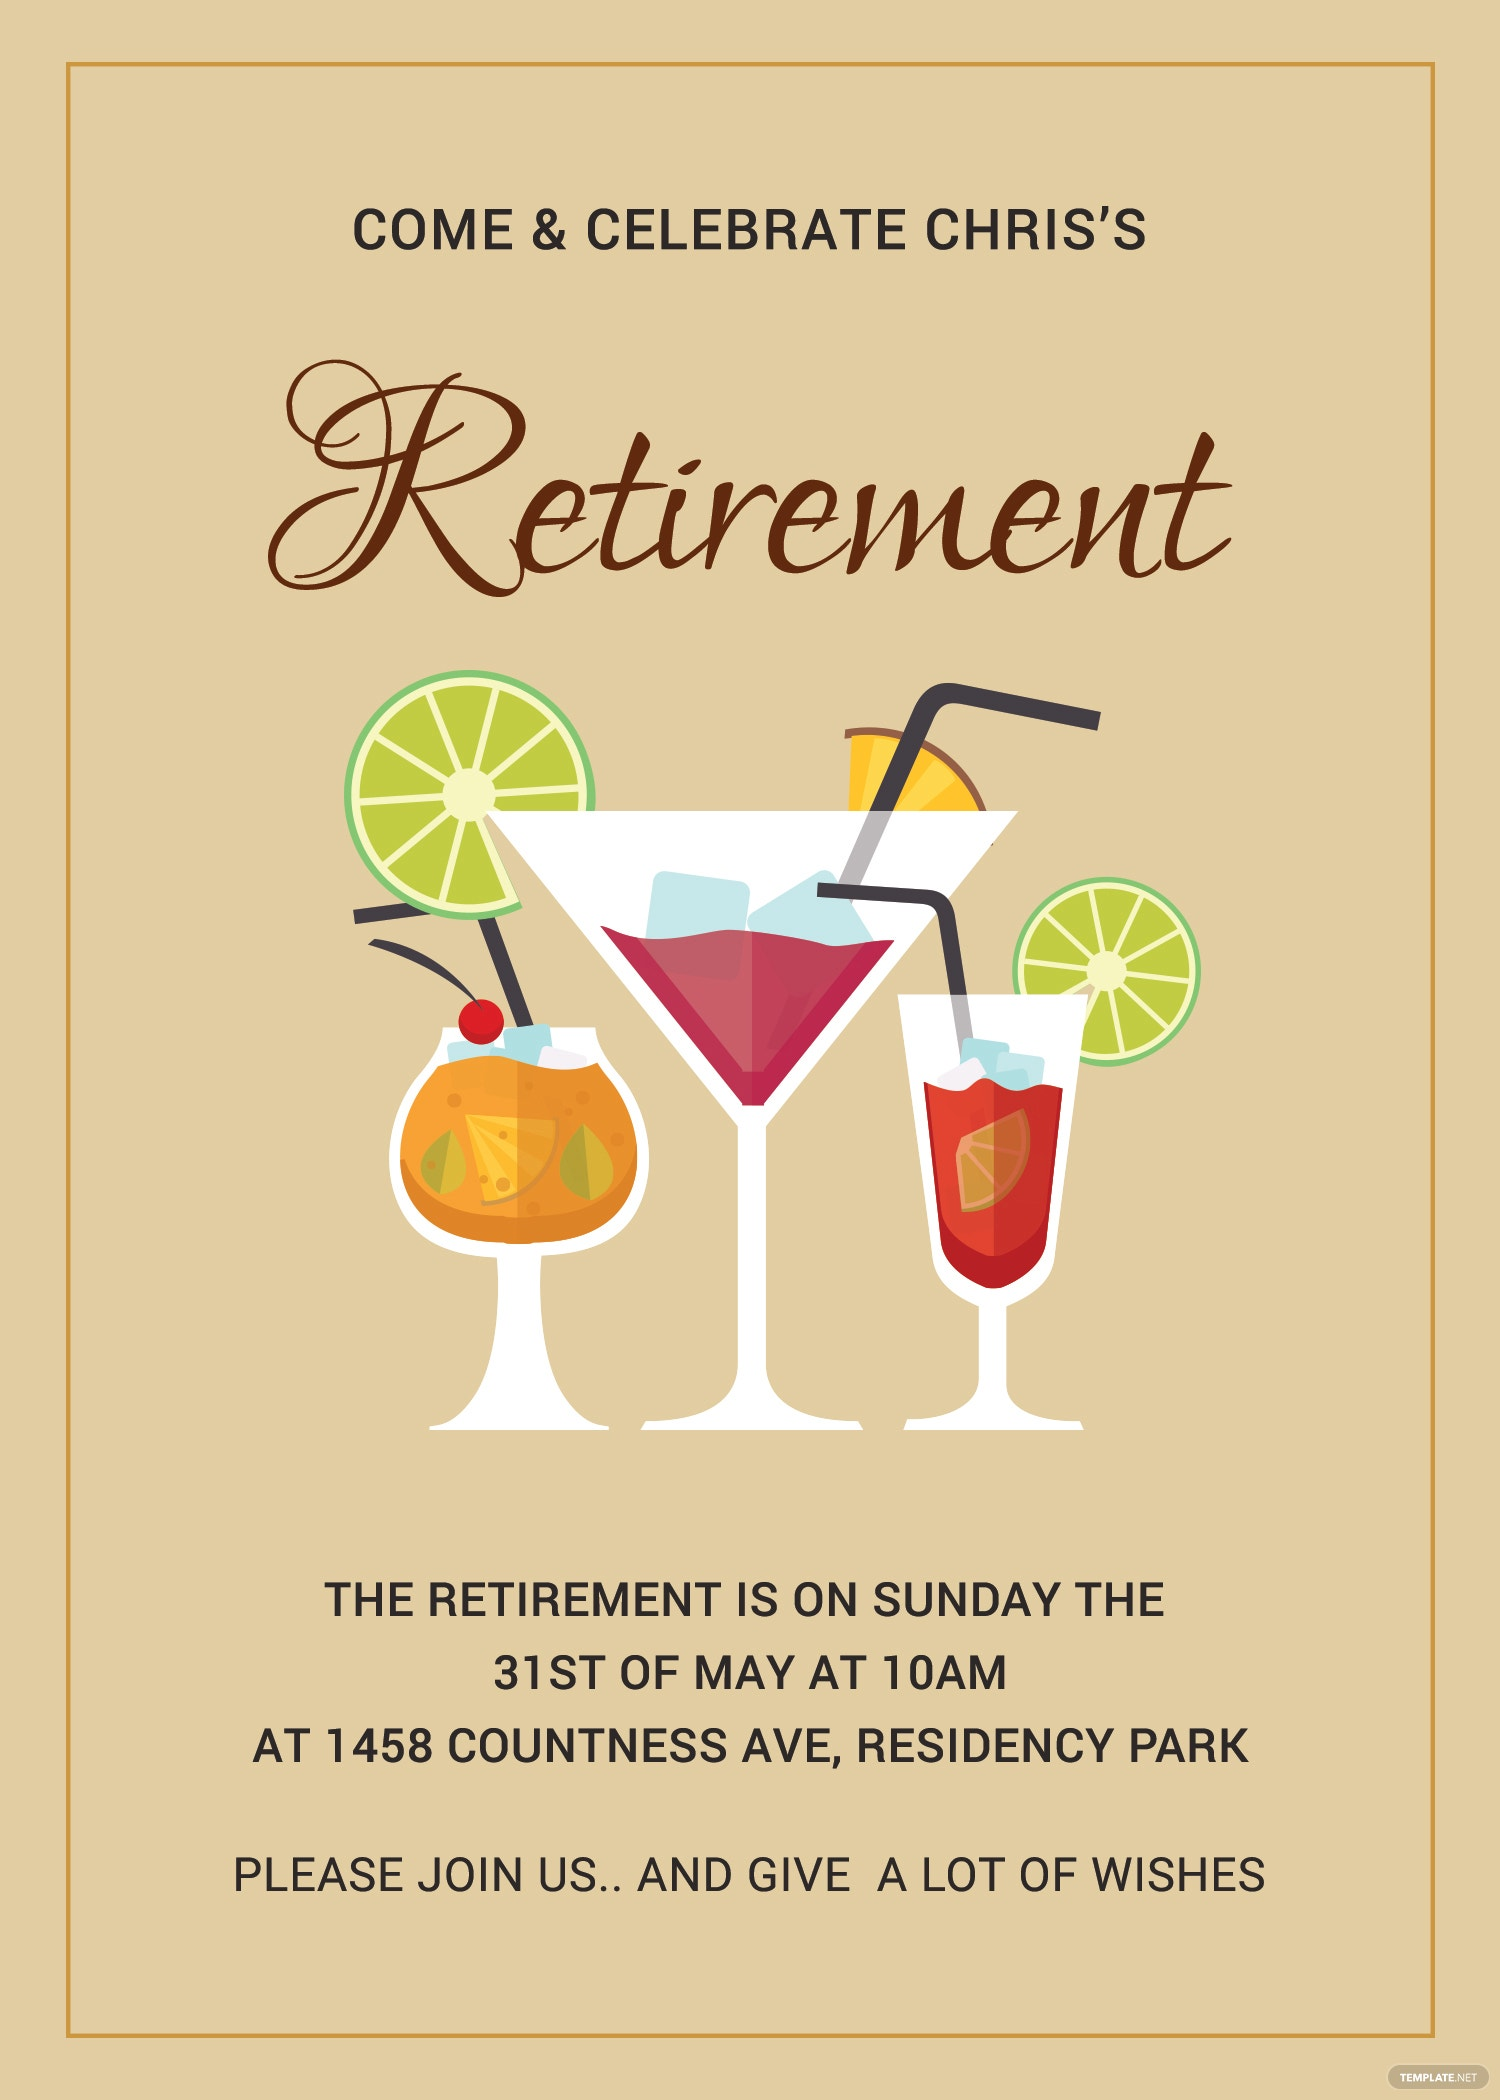 Printable Retirement Party Invitation Template in Adobe Photoshop ...